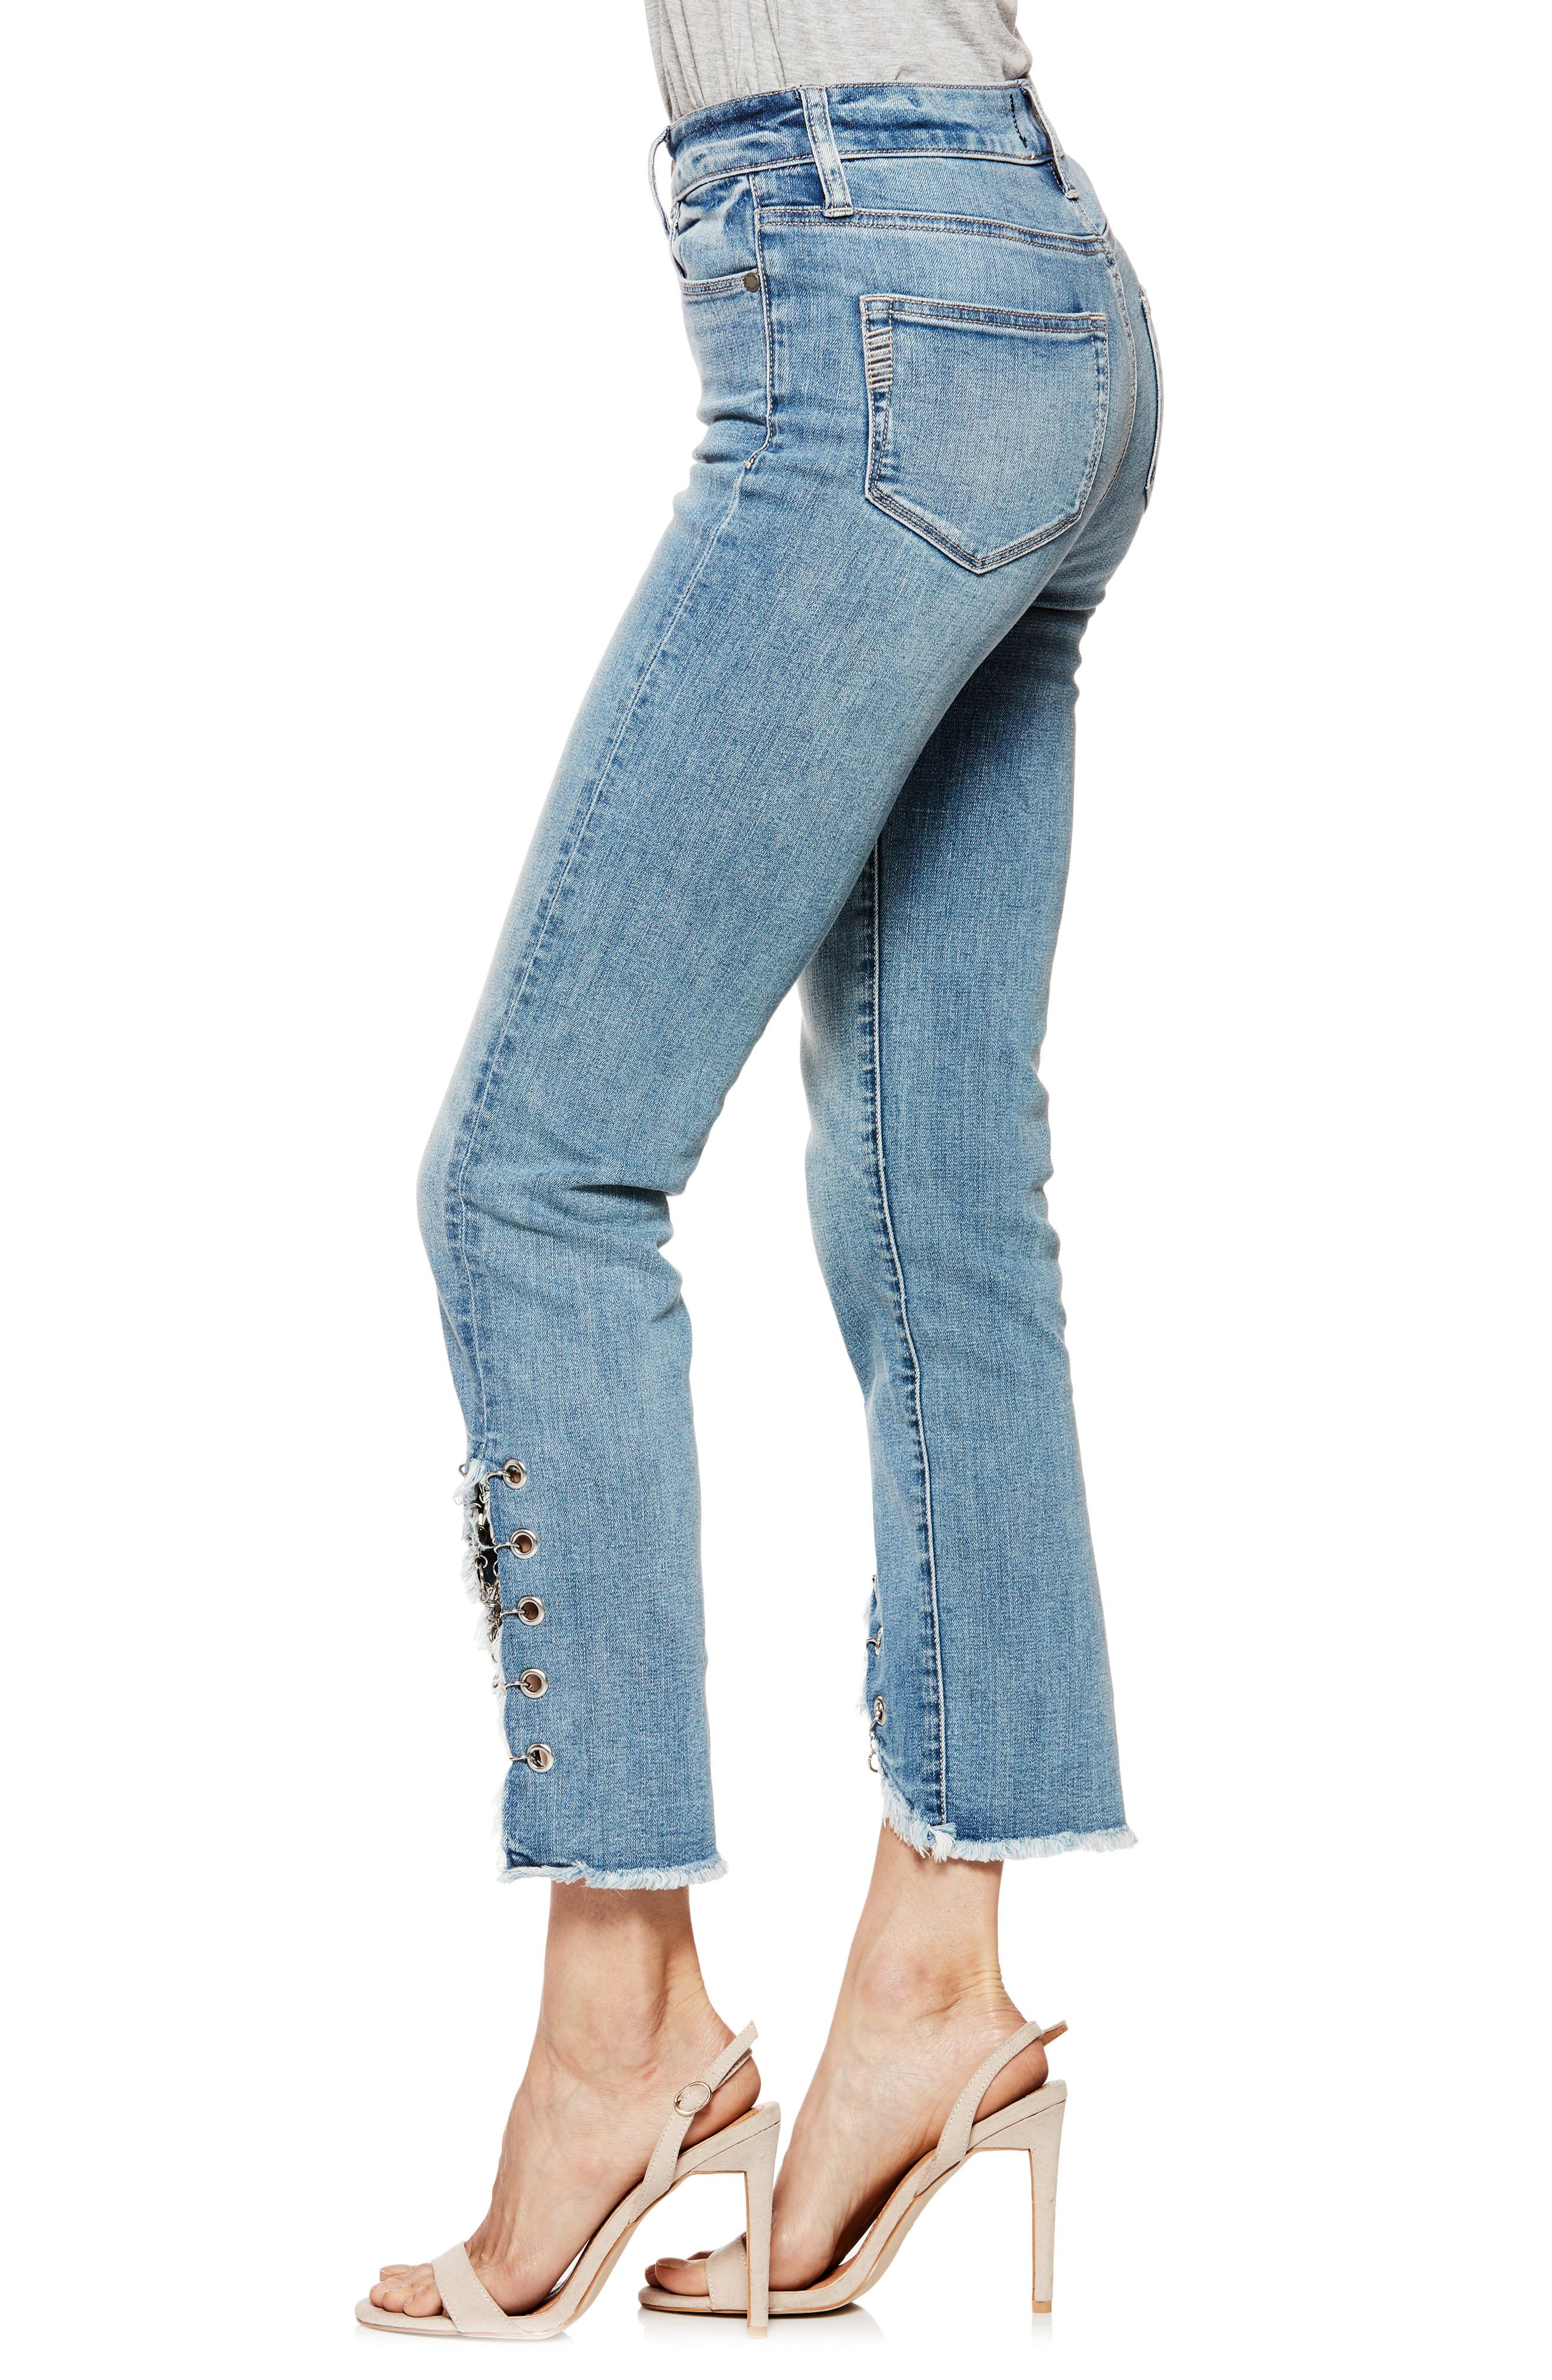 Hoxton High Waist Ankle Straight Leg Jeans,                             Alternate thumbnail 3, color,                             400